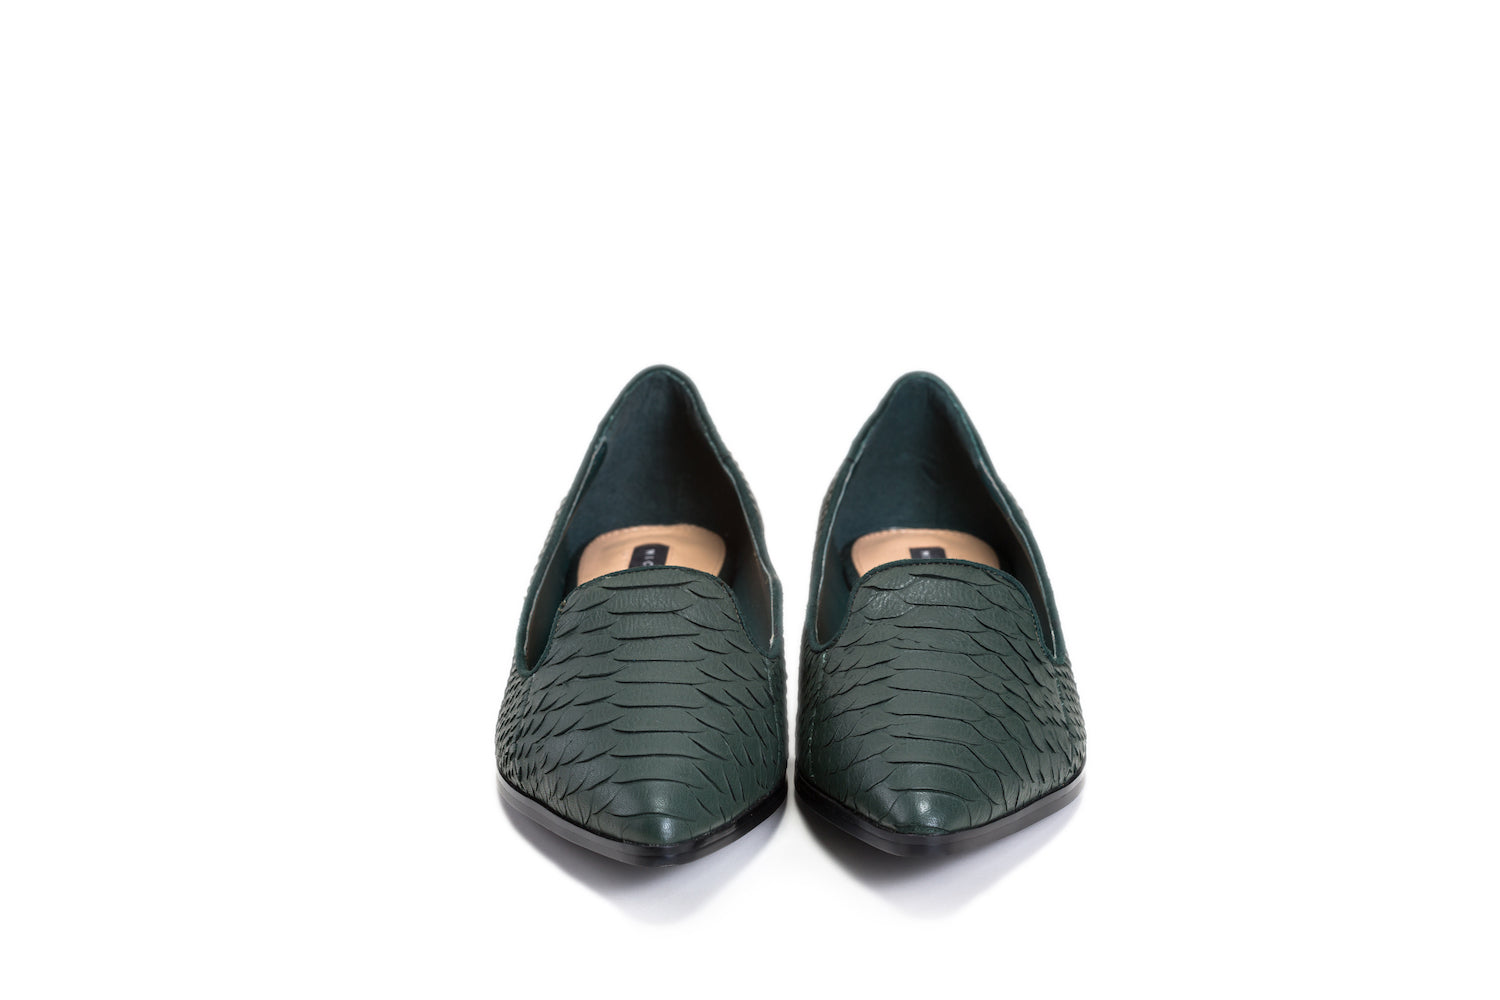 MICHELE HO Green crocodile textured real leather flats